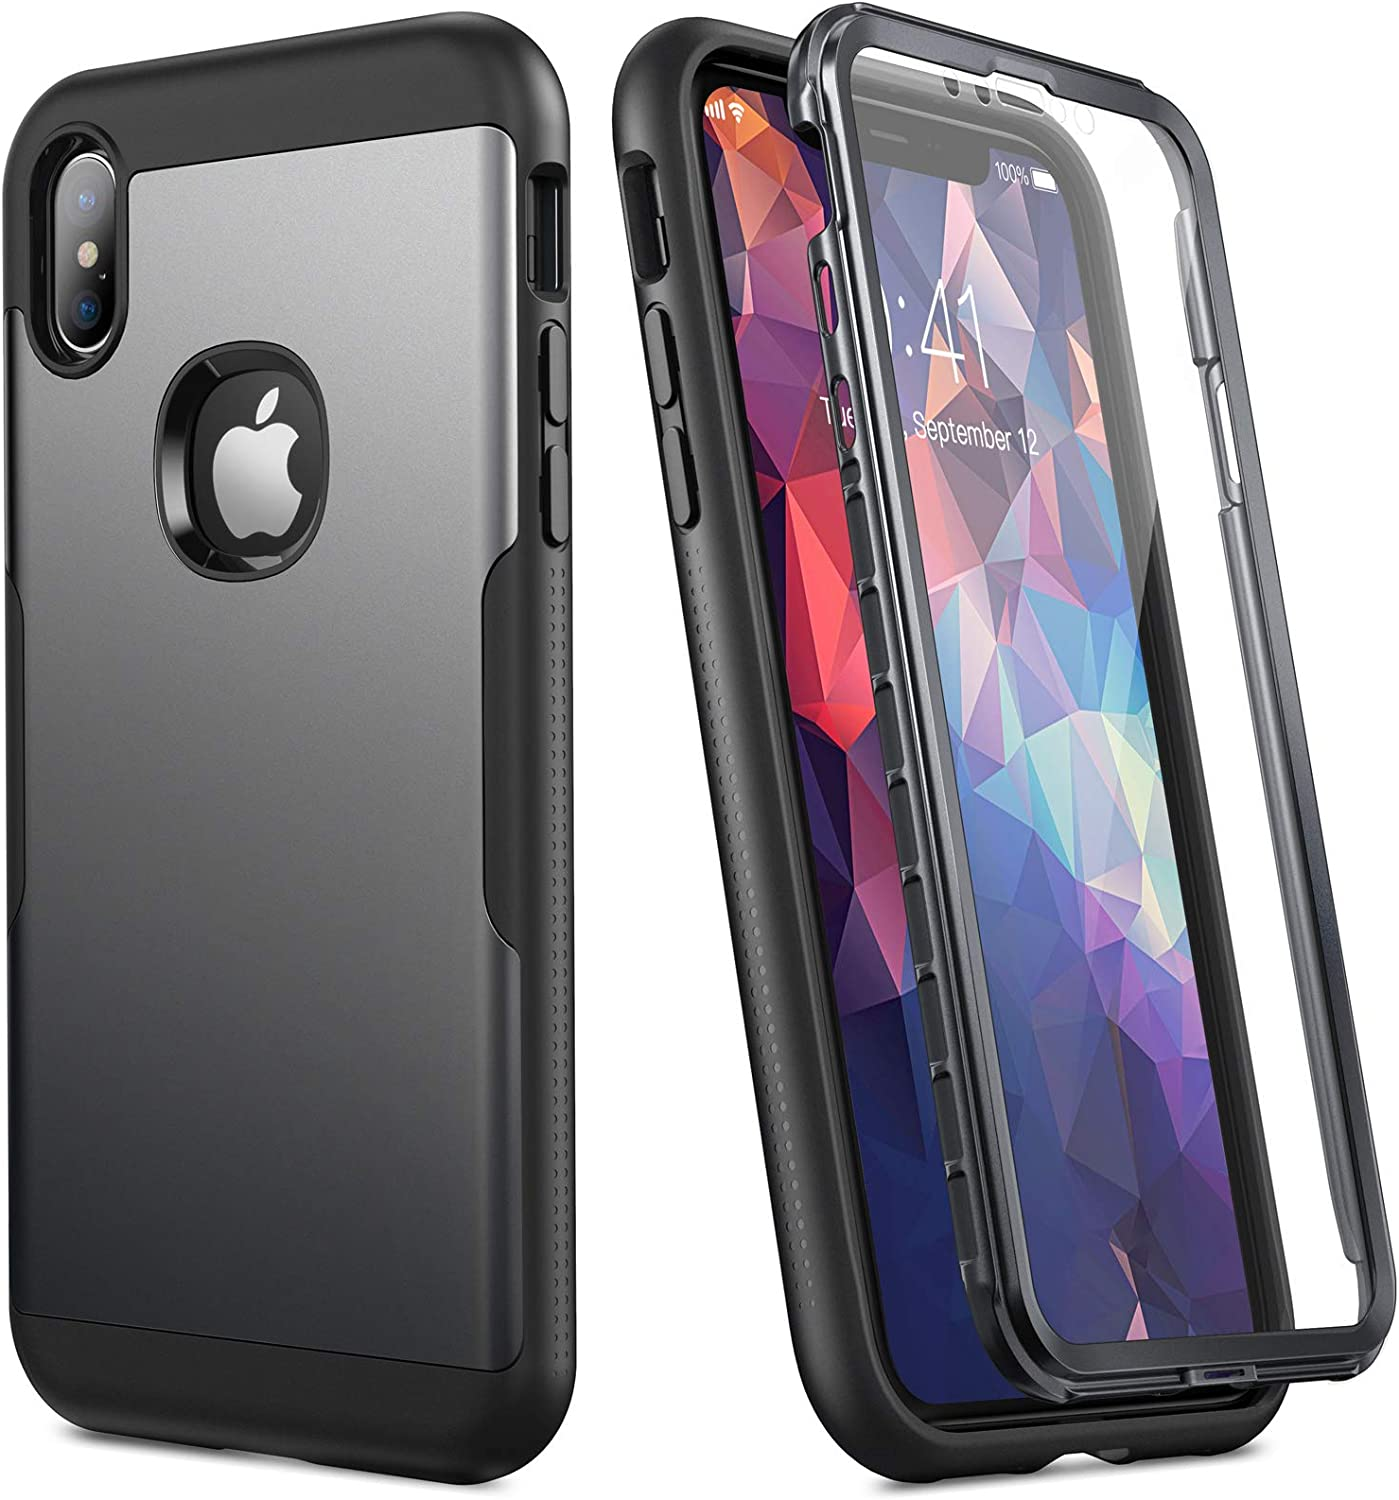 YOUMAKER [2020 Upgraded] iPhone Xs Max Case, Full Body Rugged with Built-in Screen Protector Heavy Duty Protection Slim Fit Shockproof Cover for iPhone Xs Max 6.5 Inch -Black